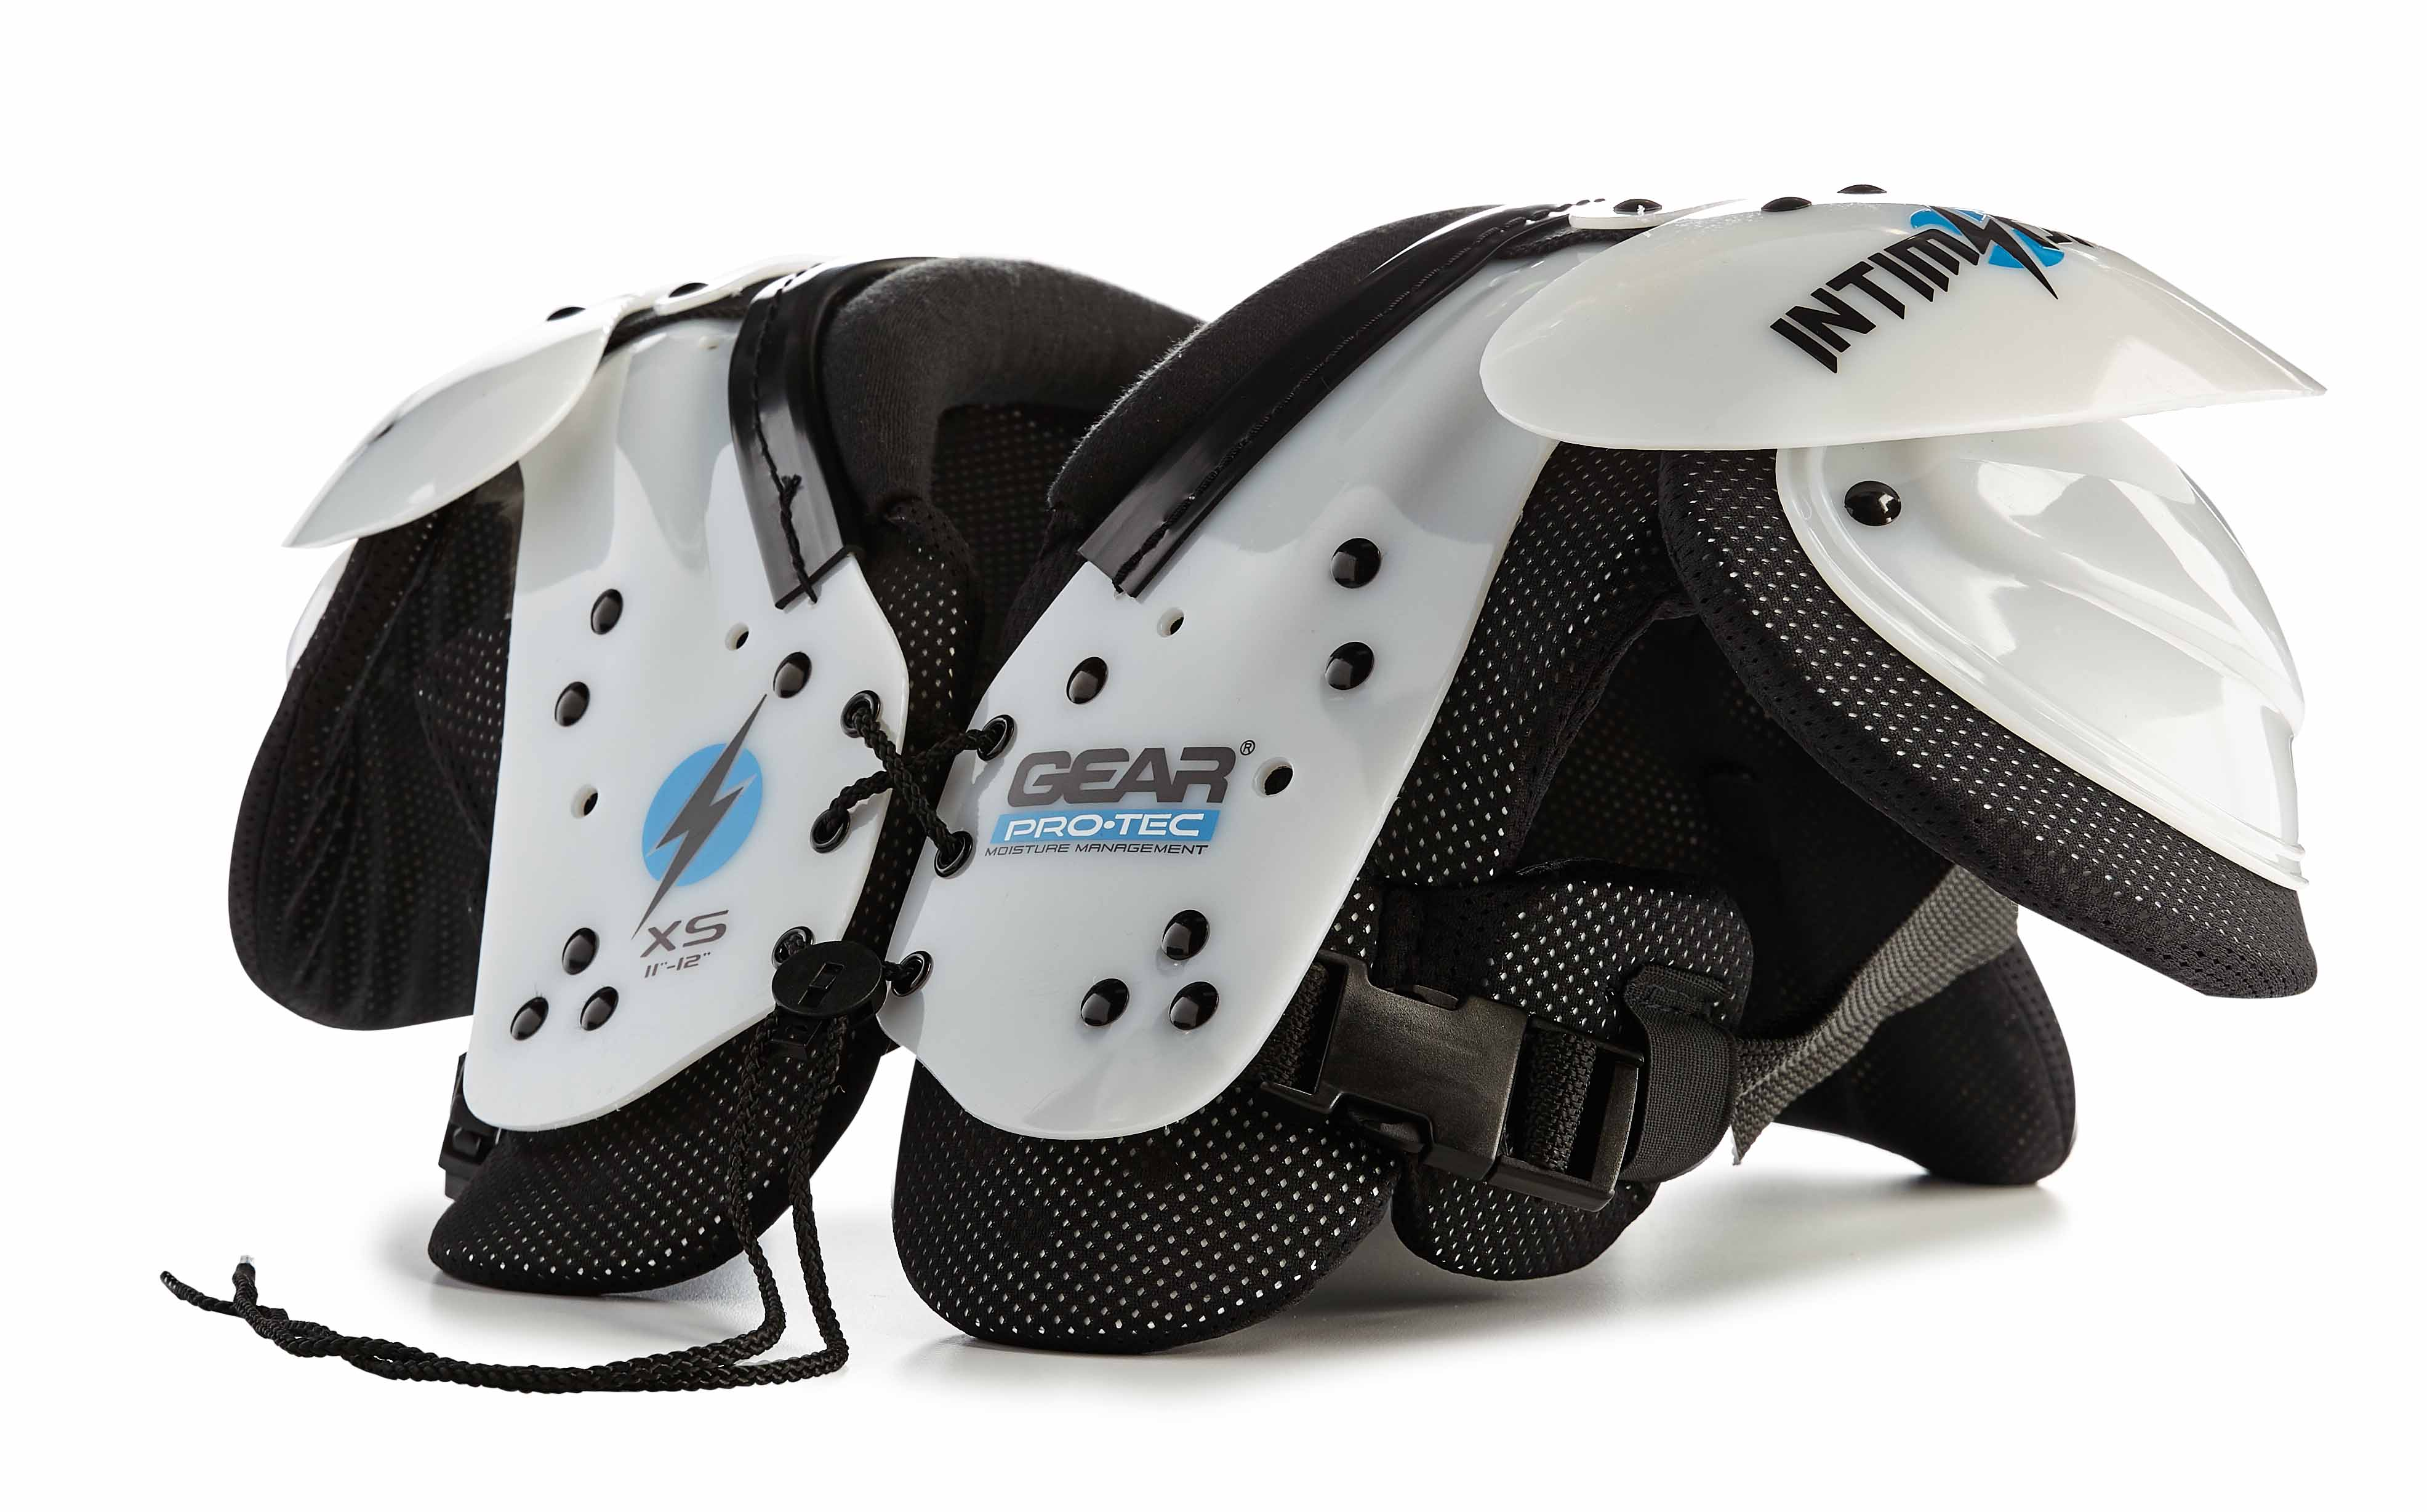 Gear Protec Intimidator JR Shoulder Pad